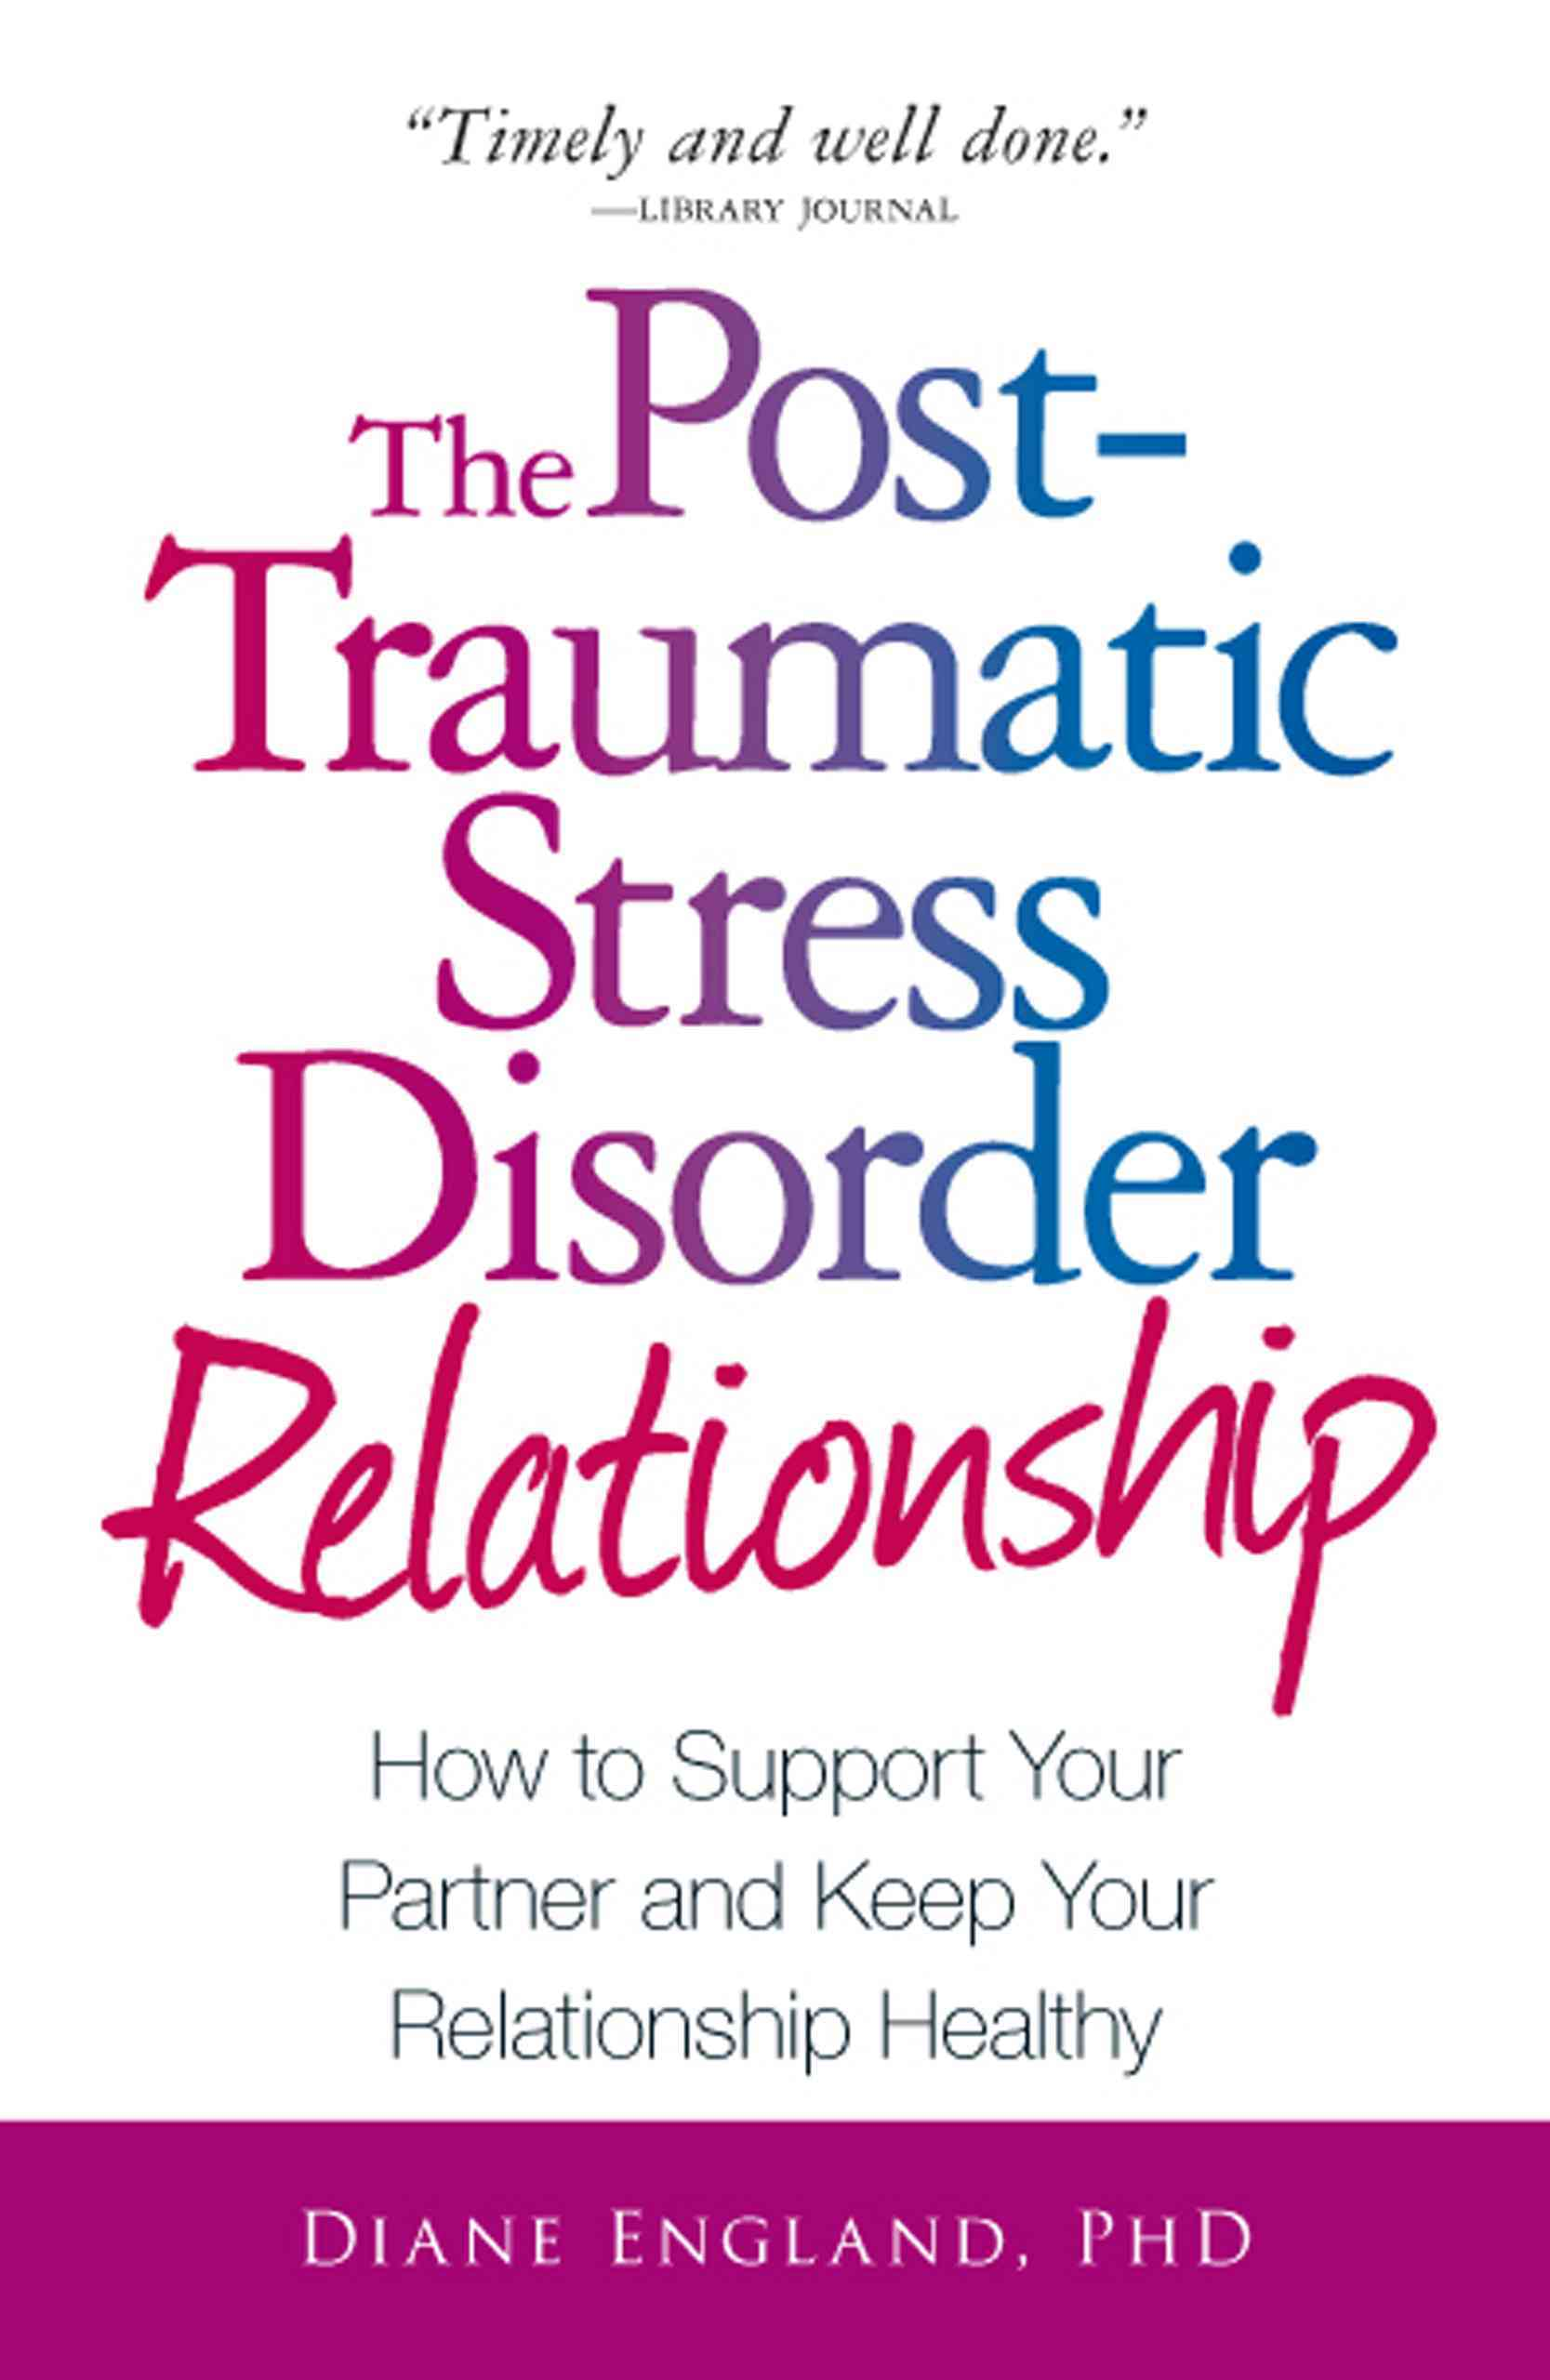 The Post-Traumatic Stress Disorder Relationship: How to Support Your Partner and Keep Your Relationship Healthy (Paperback)